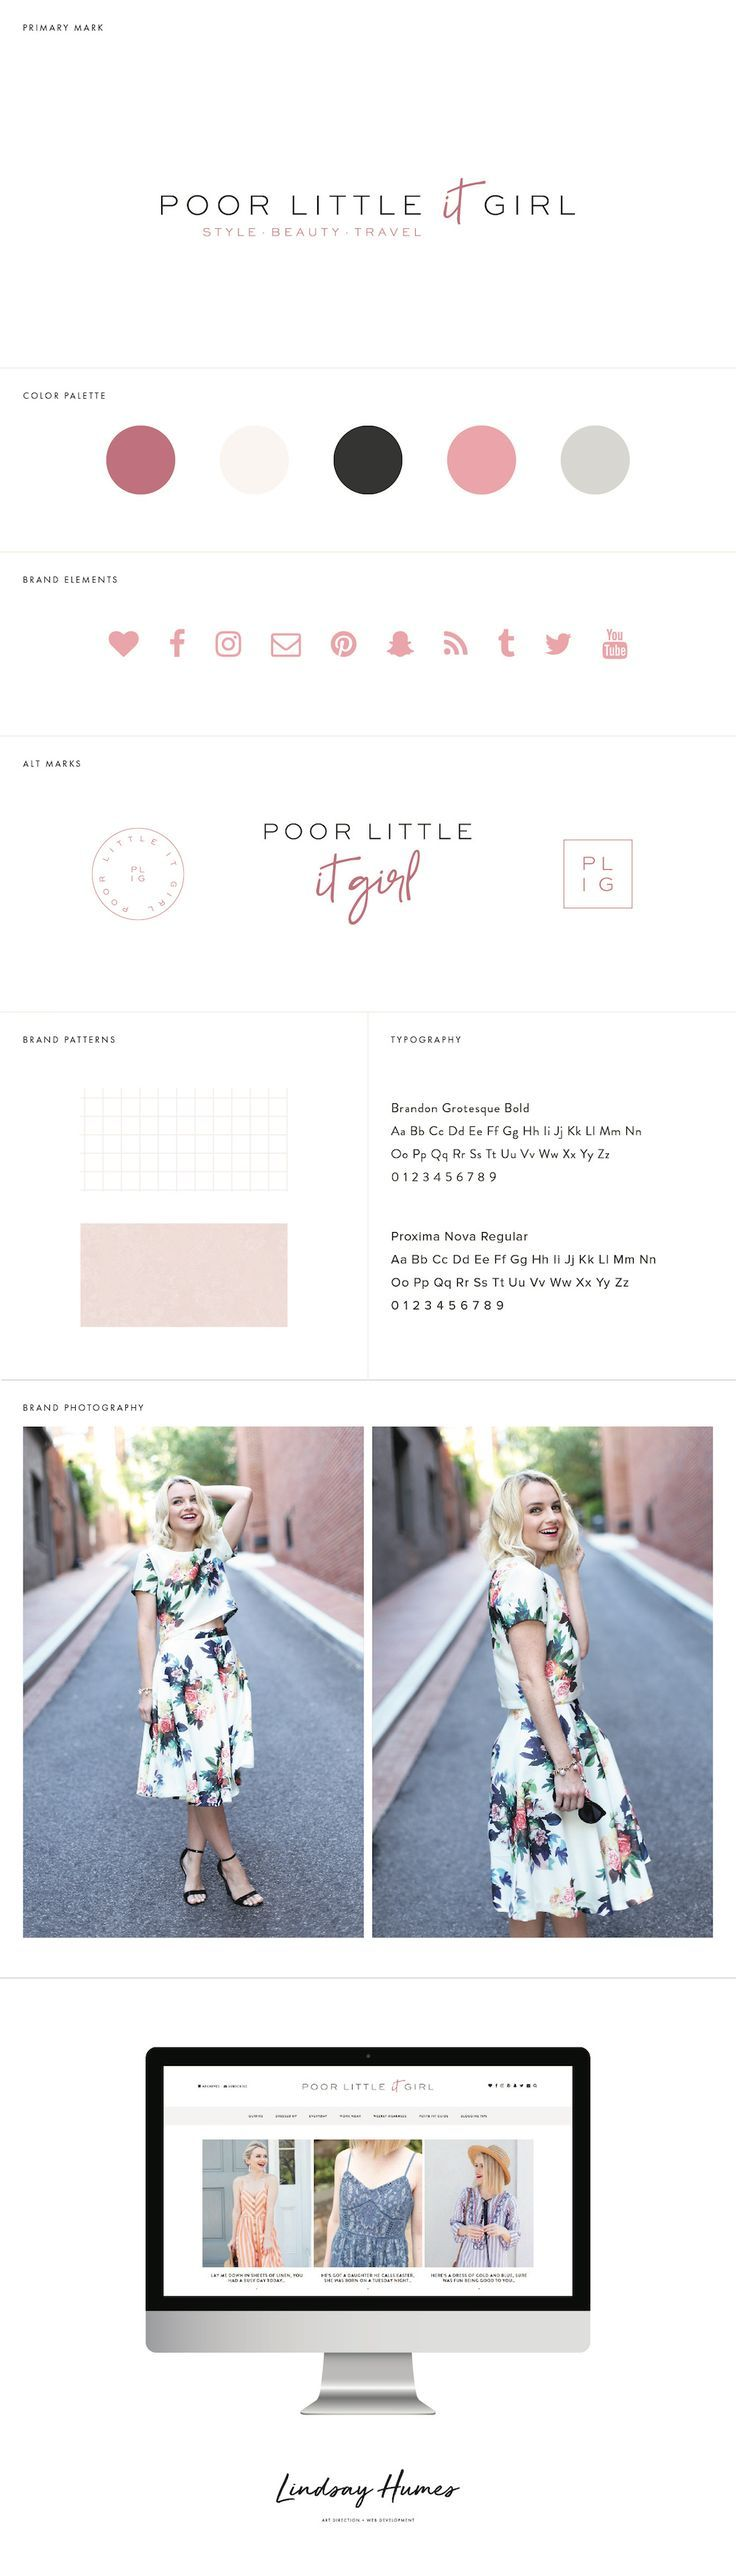 Poor Little It Girl Blog Design by Lindsay Humes